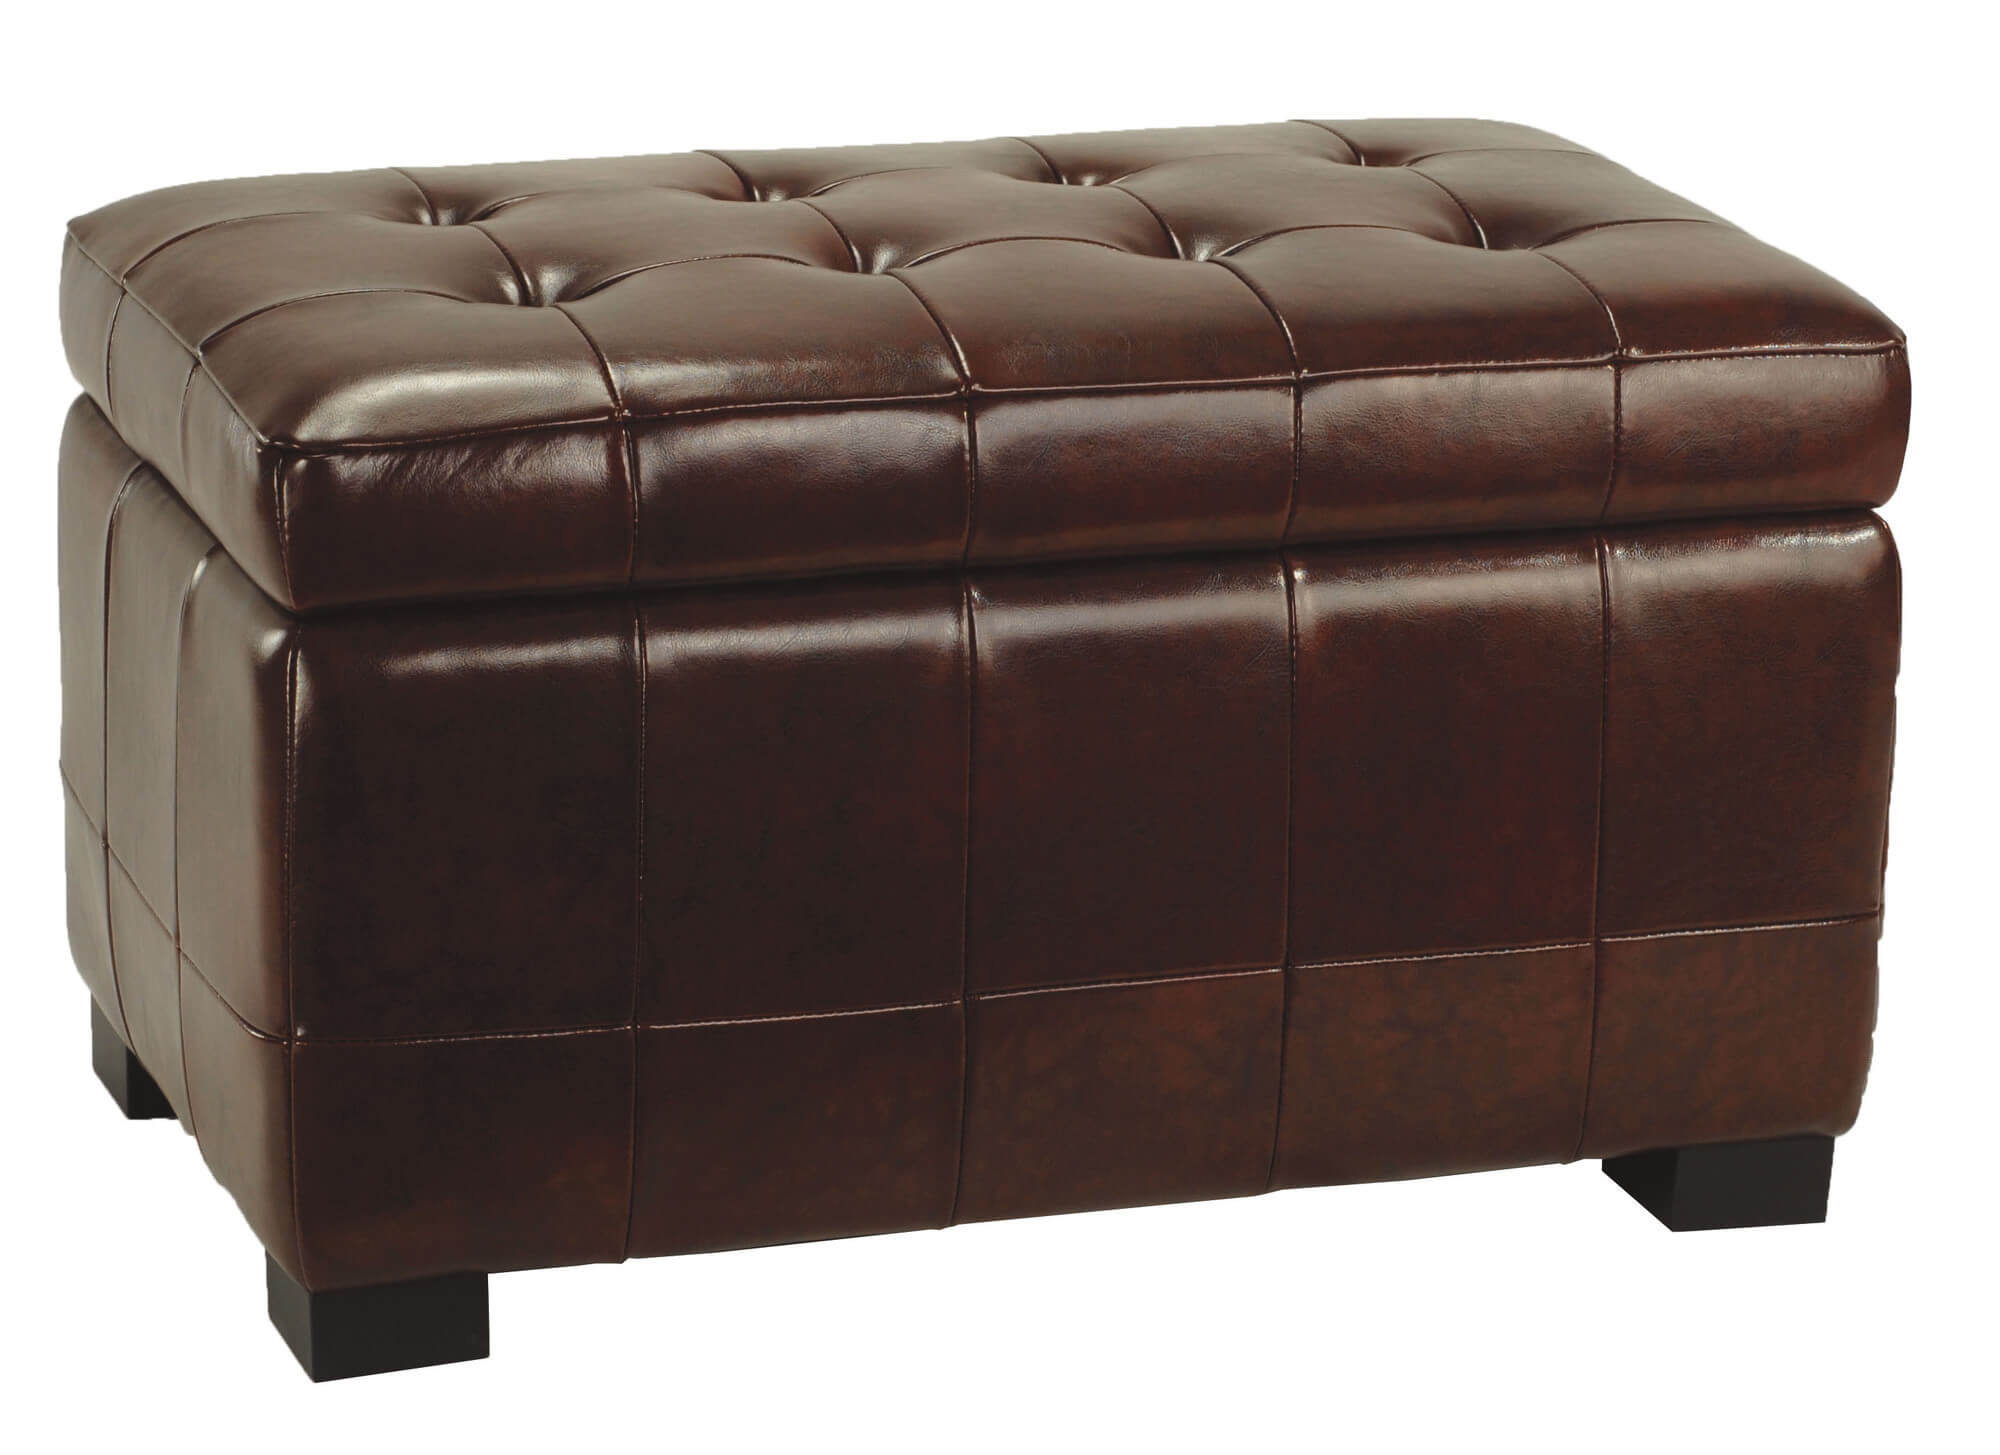 Large beechwood ottoman from Safavieh is clad in leather and features hinged cushion lid for storage access.